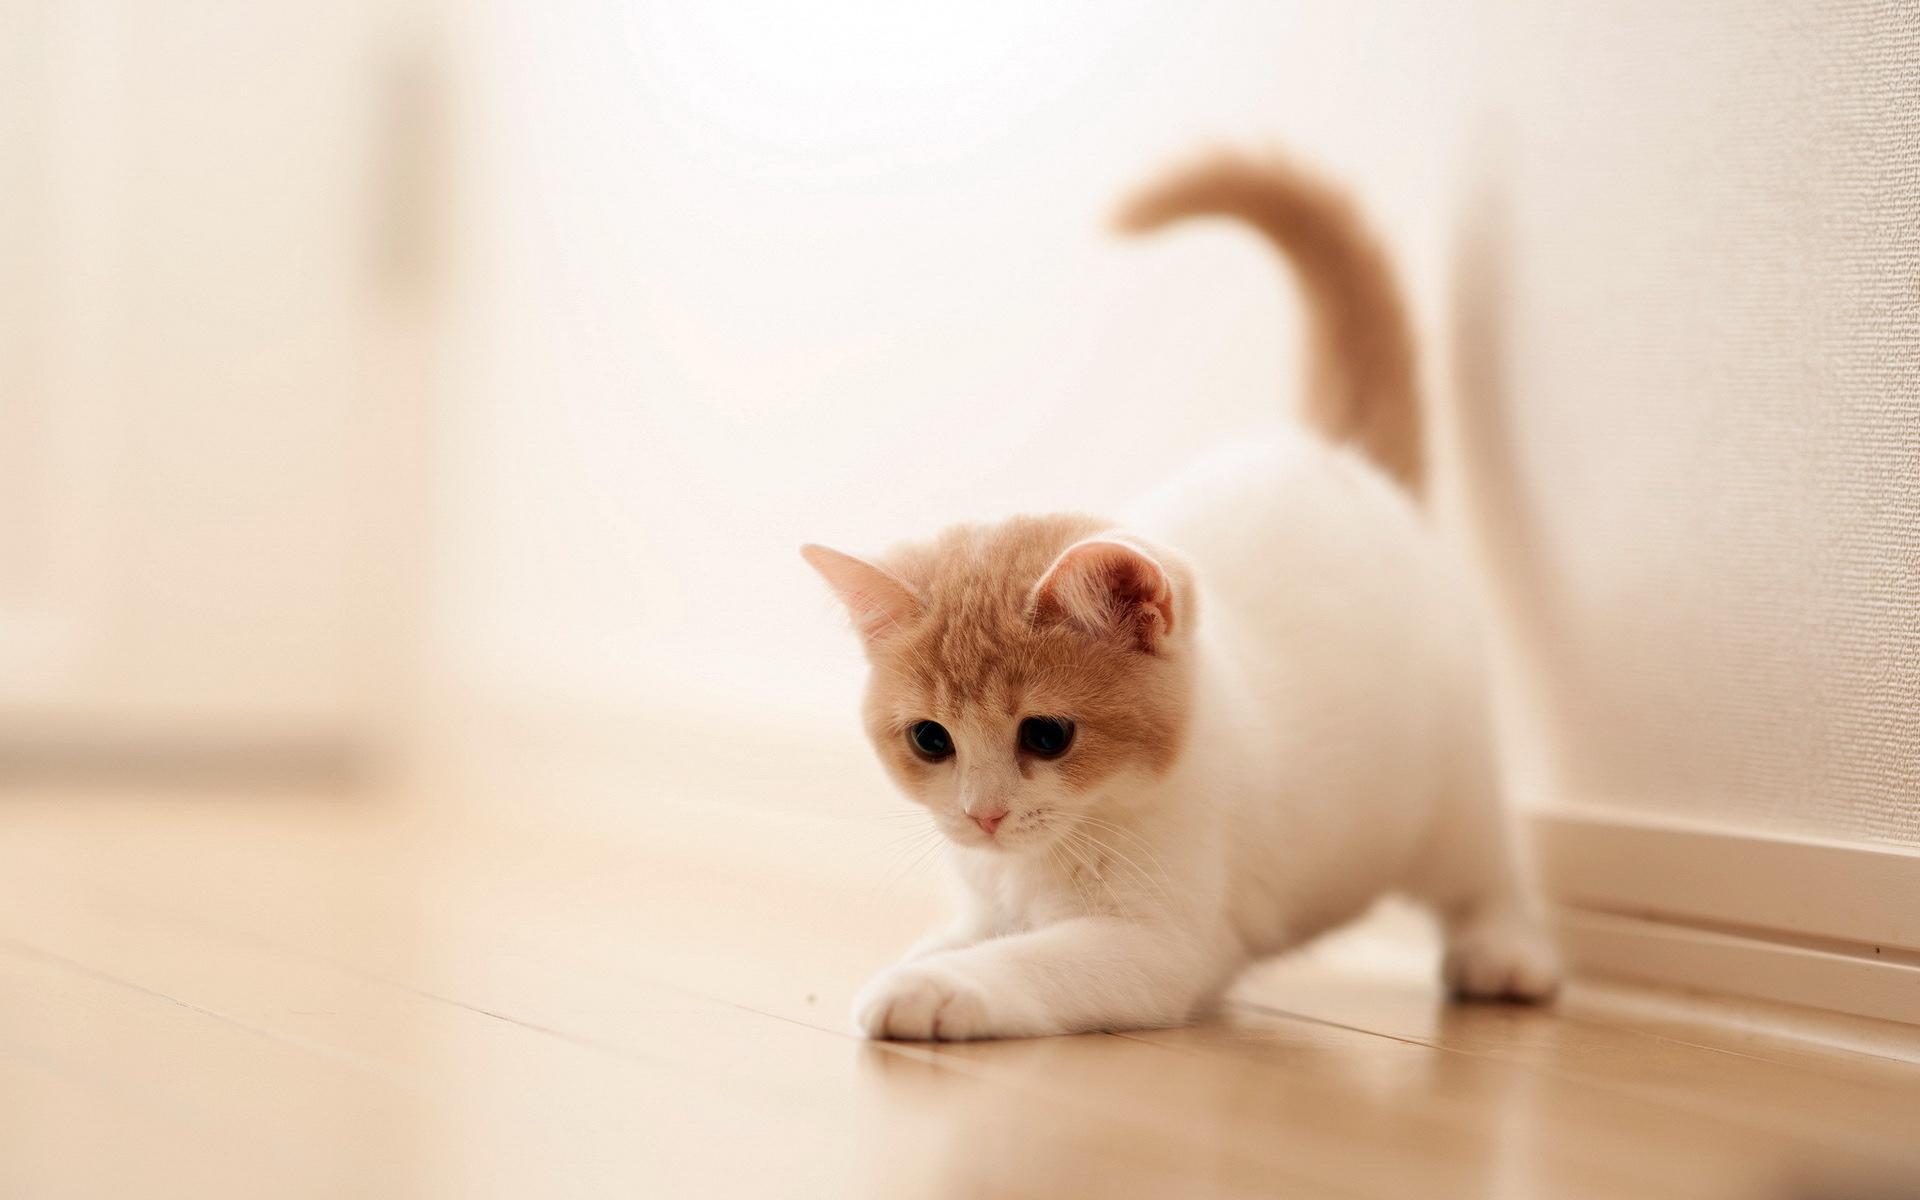 Hd wallpaper cat - Cat Wallpapers Hd Pictures One Hd Wallpaper Pictures Backgrounds